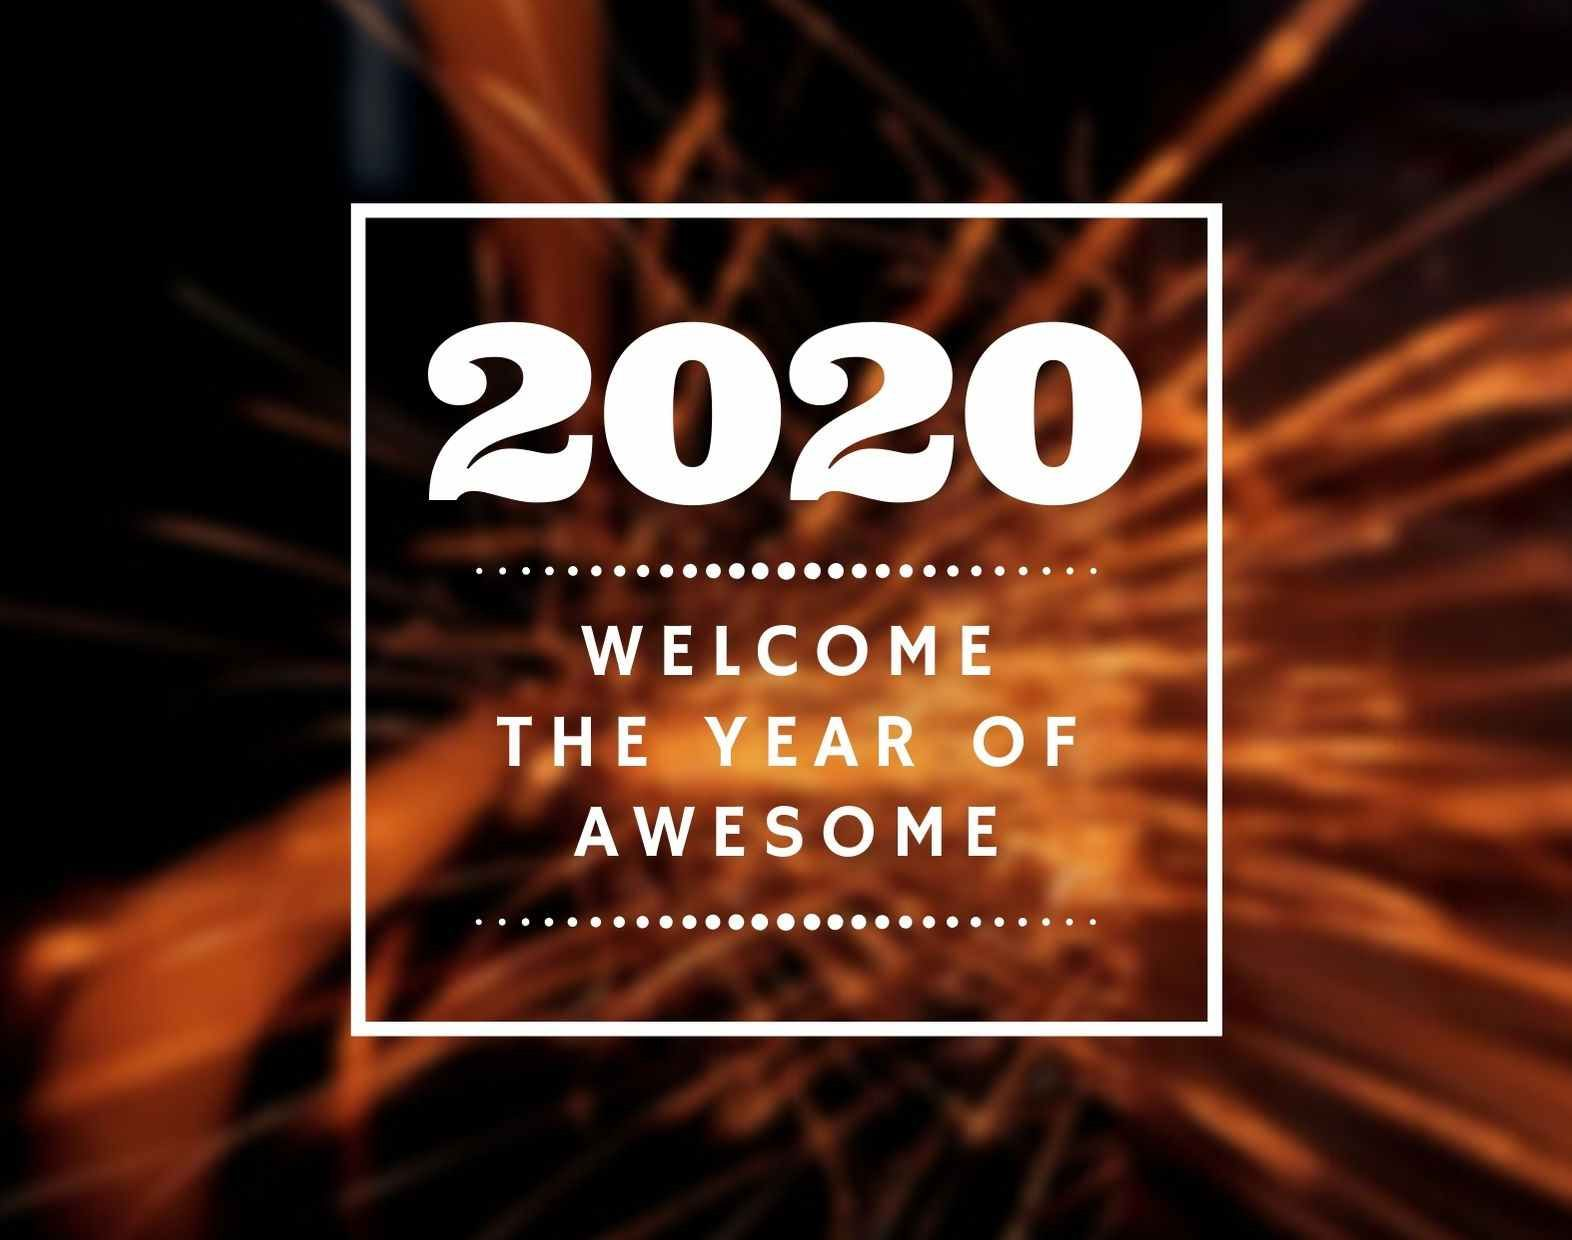 2020 new year images for new years eve 2020